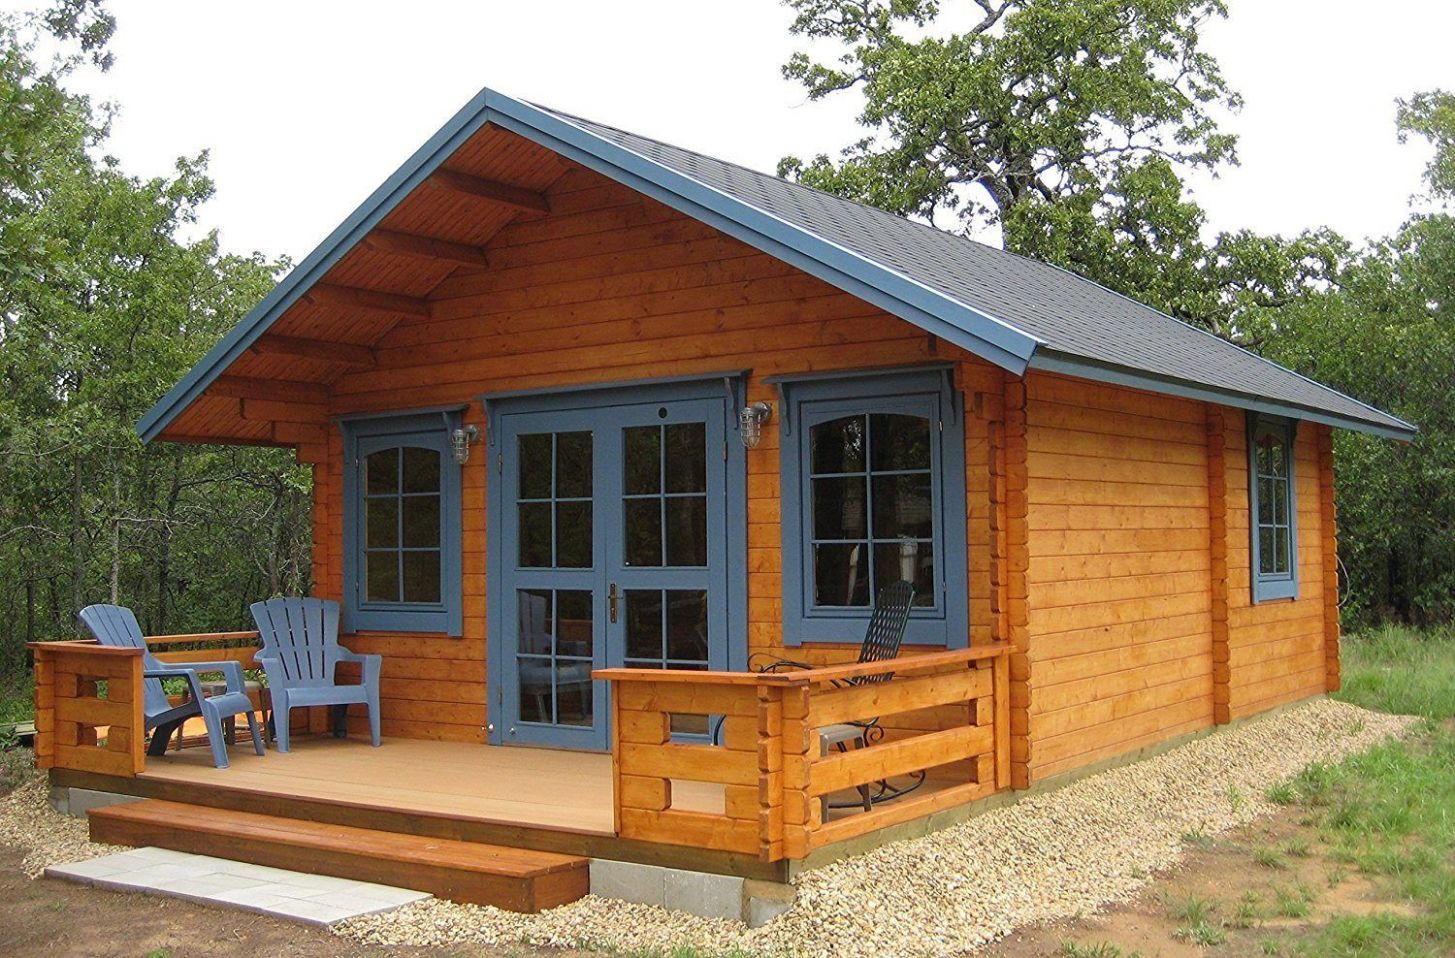 The 11 Best Tiny Houses You Can Buy On Amazon (With images) | Tiny ...